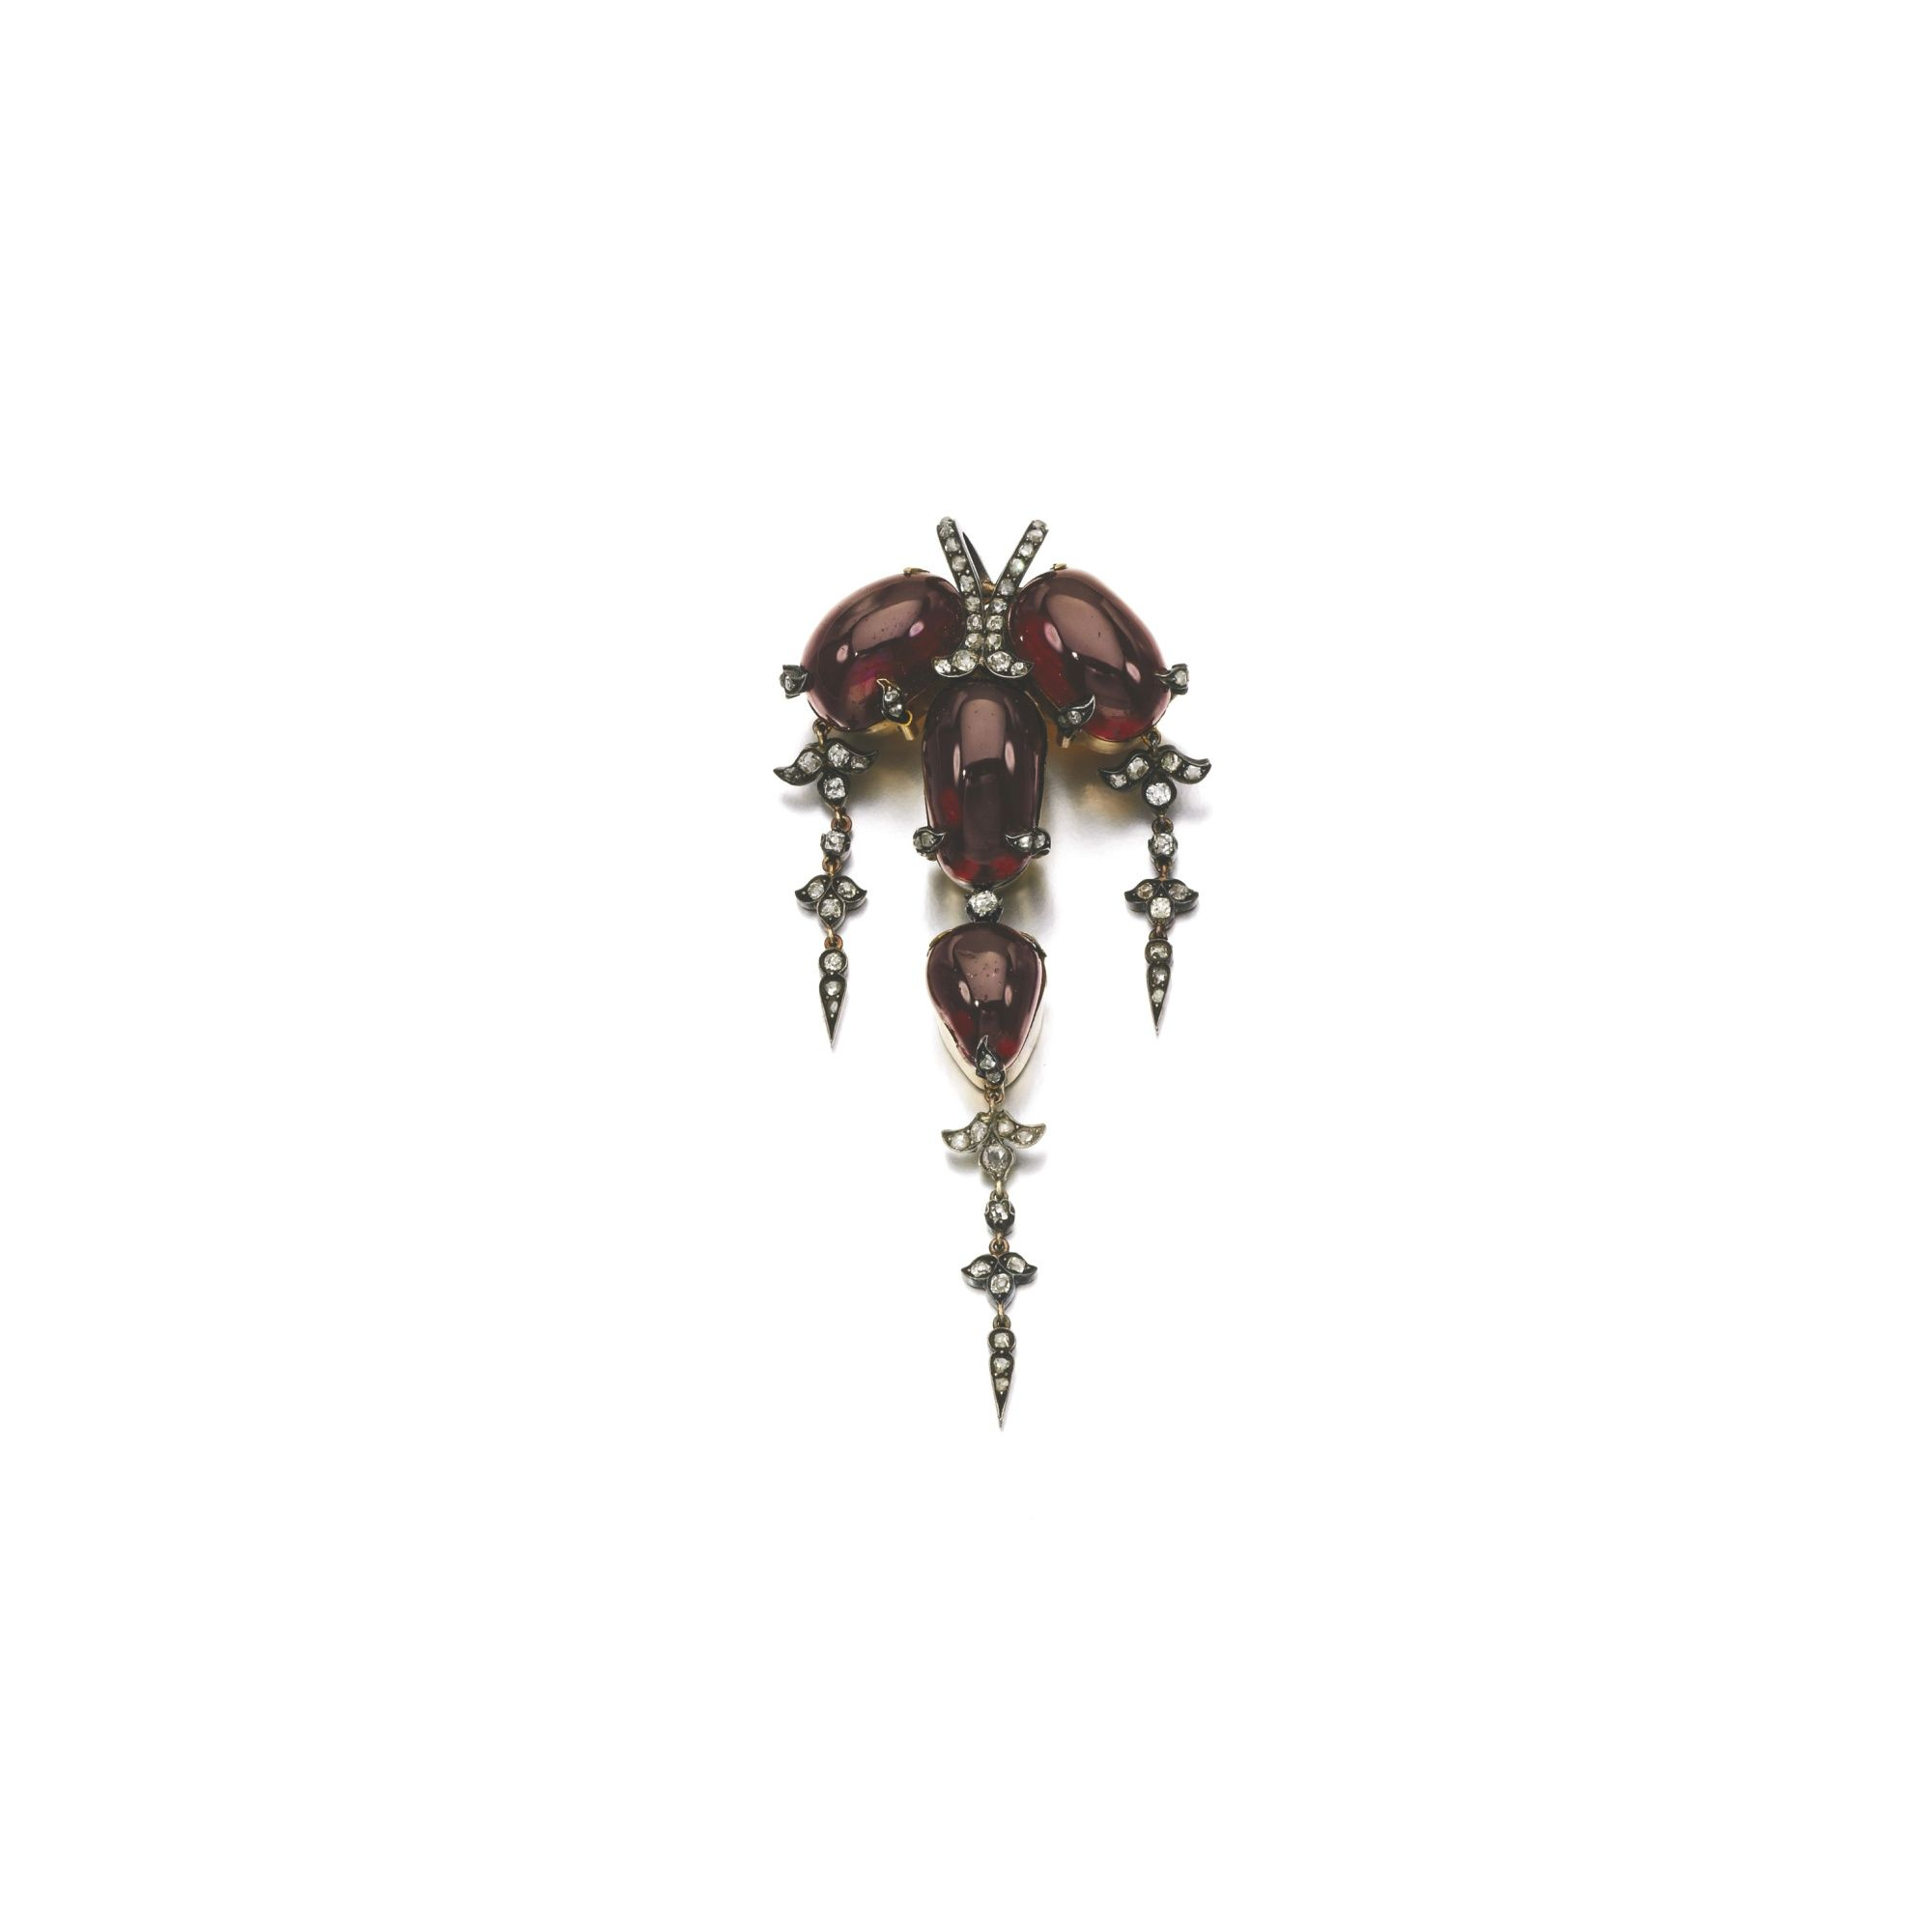 Garnet and diamond broochpendant s set with carbuncle garnets